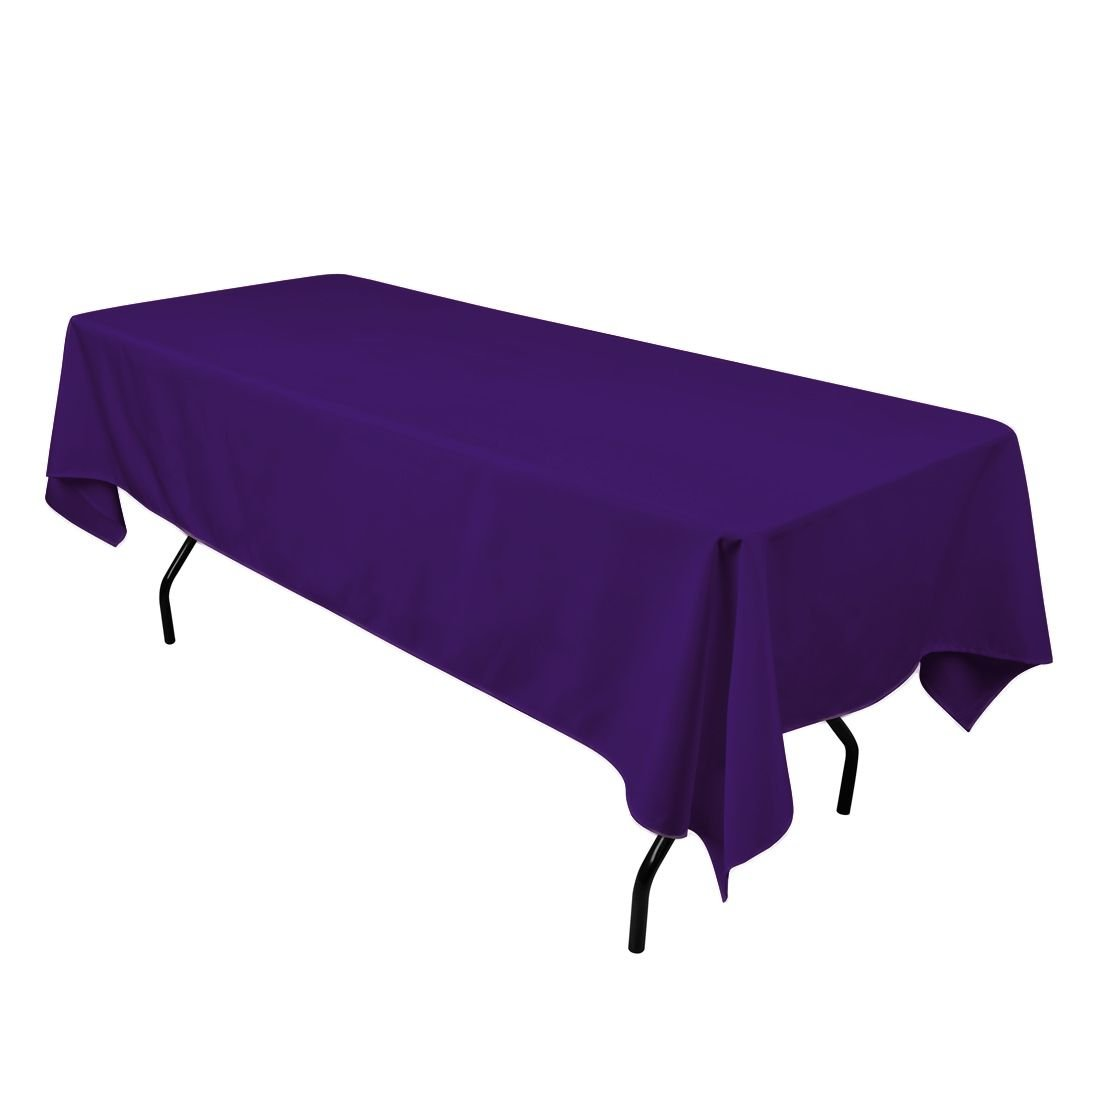 Amazon.com: LinenTablecloth 60 x 102-Inch Rectangular Polyester ...